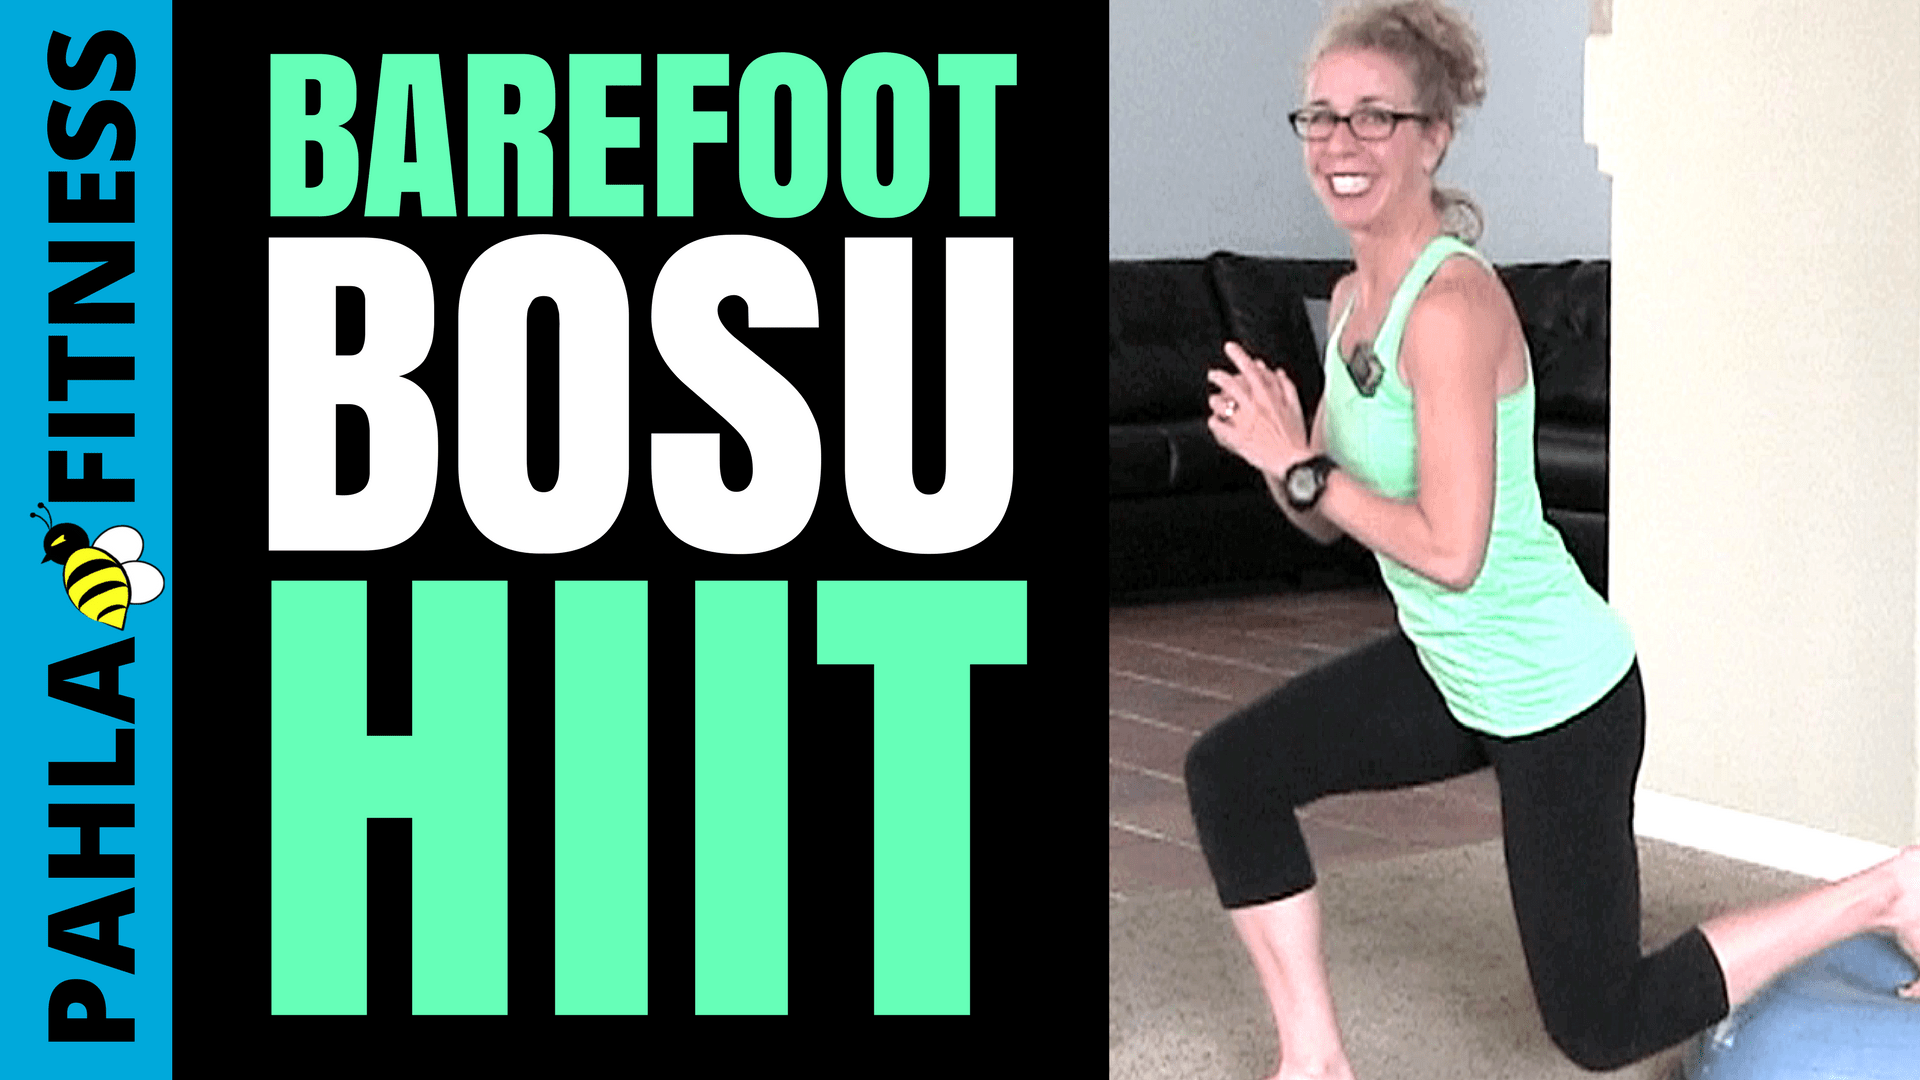 Barefoot 30 Minute FAT LOSS HIIT Workout to TONE, SCULPT + TIGHTEN Your Total Body with a BOSU - Pahla B Fitness THUMB!